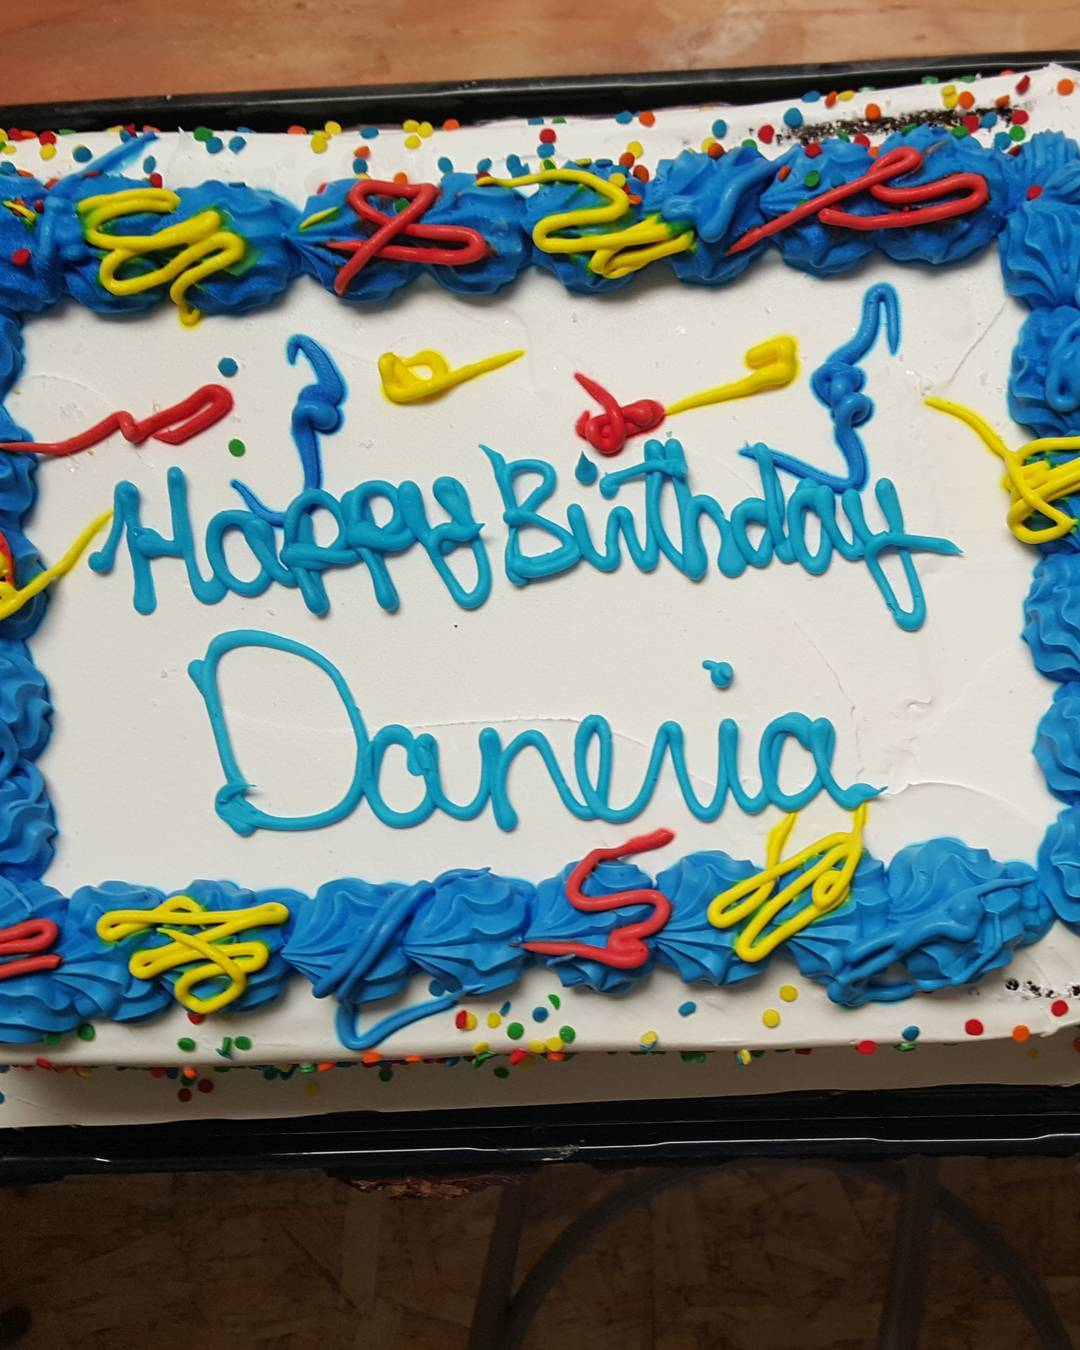 Happy Birthday to @danewebber and our accountant Maria! We combined Dane and Marias name to save space and money on this custom cake from Gordon Ramsey himself.  Happy Birthday Daneria!  #Daneria #HappyBirthday #LoadedBoards